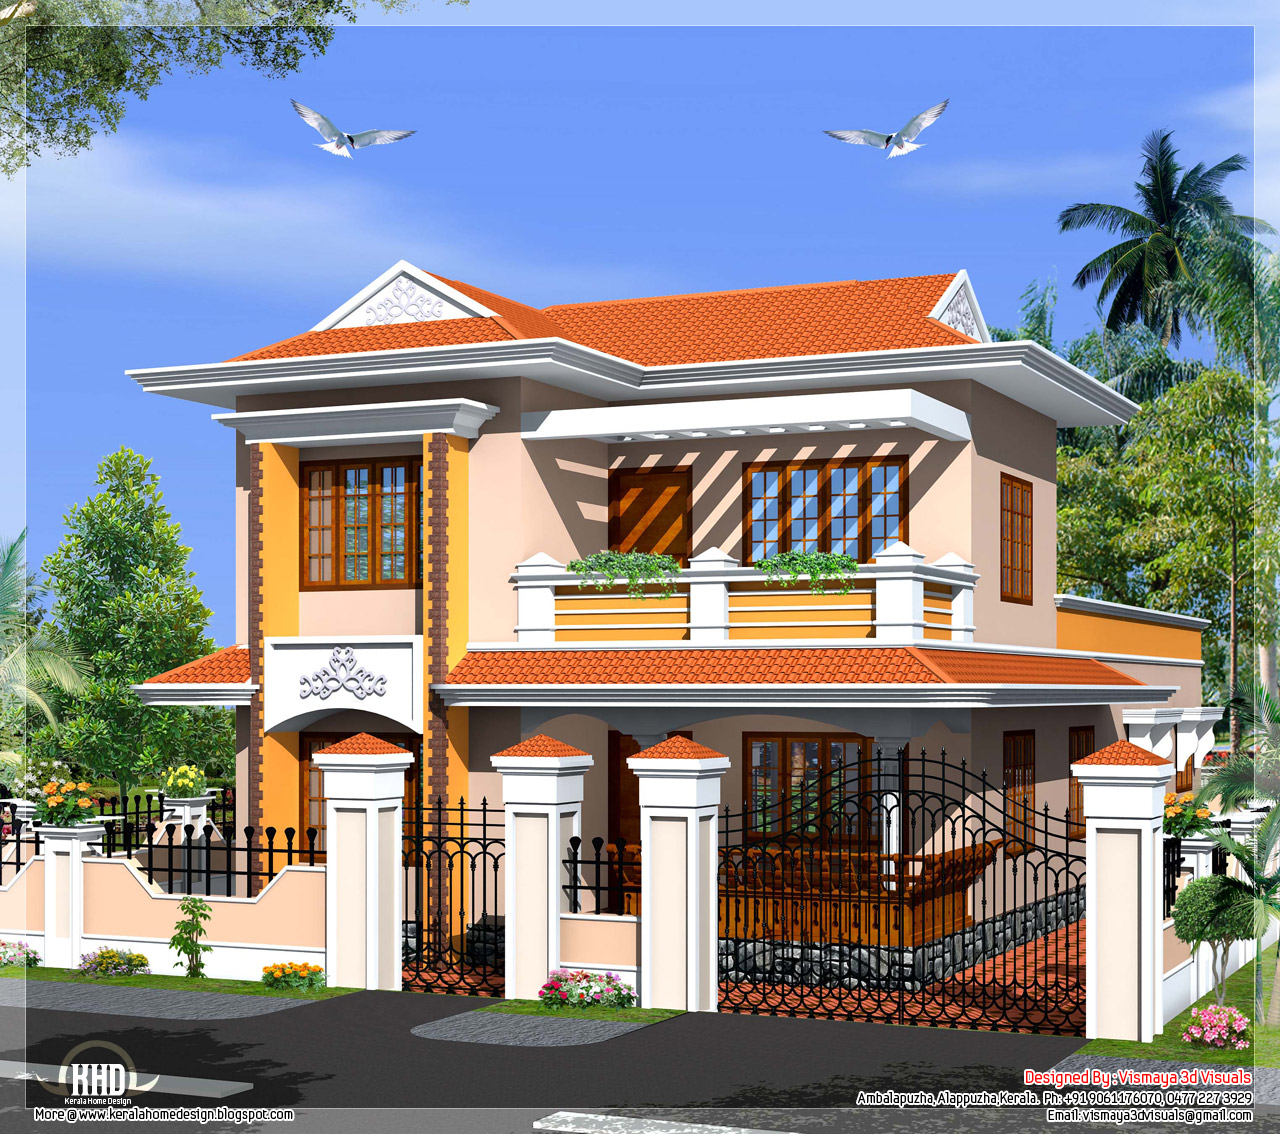 Kerala model villa in 2110 in square feet house design plans Beautiful homes com